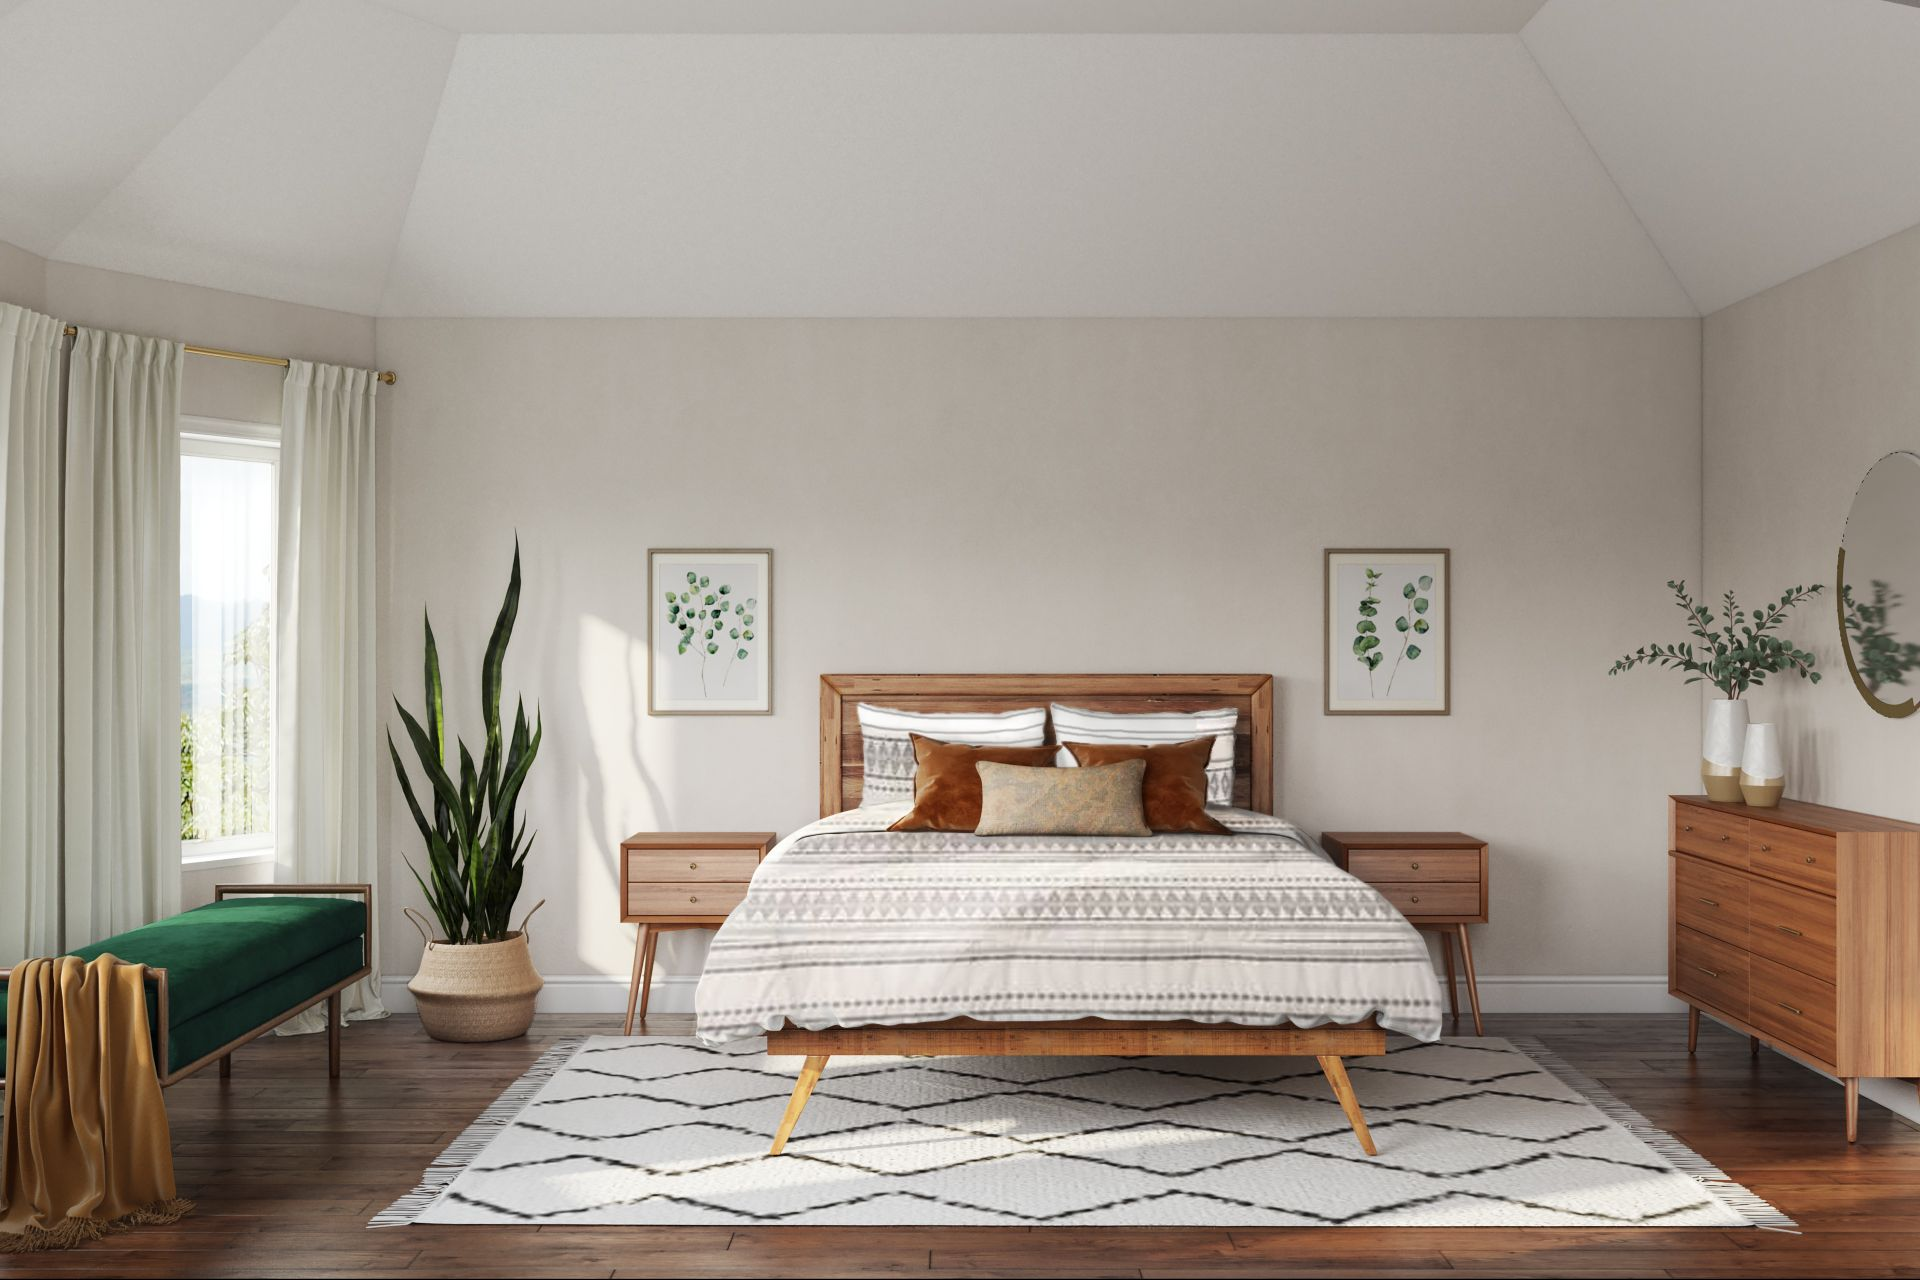 An Angular Leg Wood Bed Post Is Beautifully Matched With Angular Leg Wood Nightstands In 2020 Bedroom Interior Scandinavian Design Bedroom Modern Scandinavian Bedroom